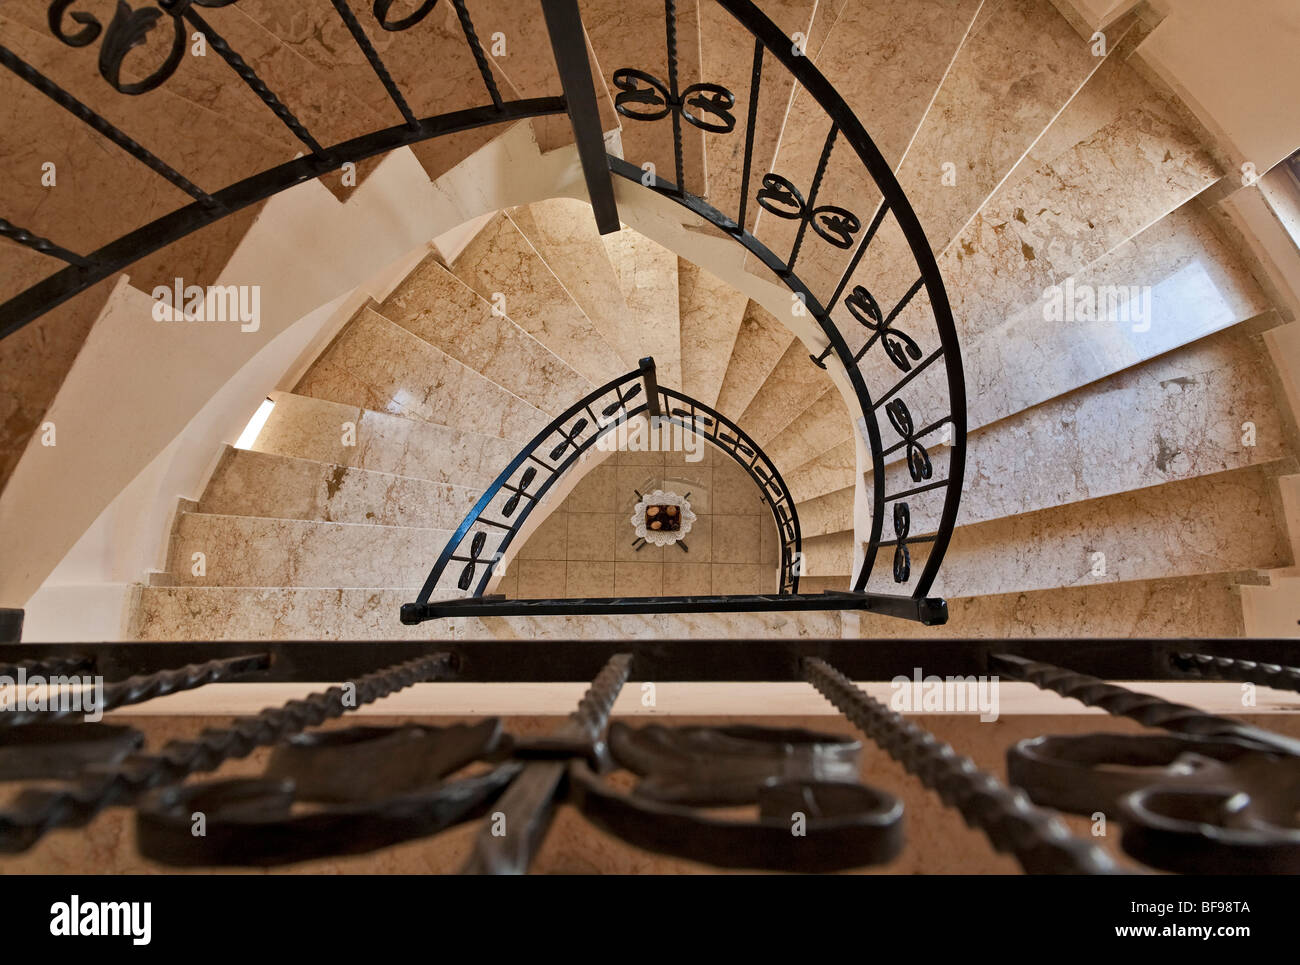 Staircase detail in a luxury villa in Turkey - Stock Image